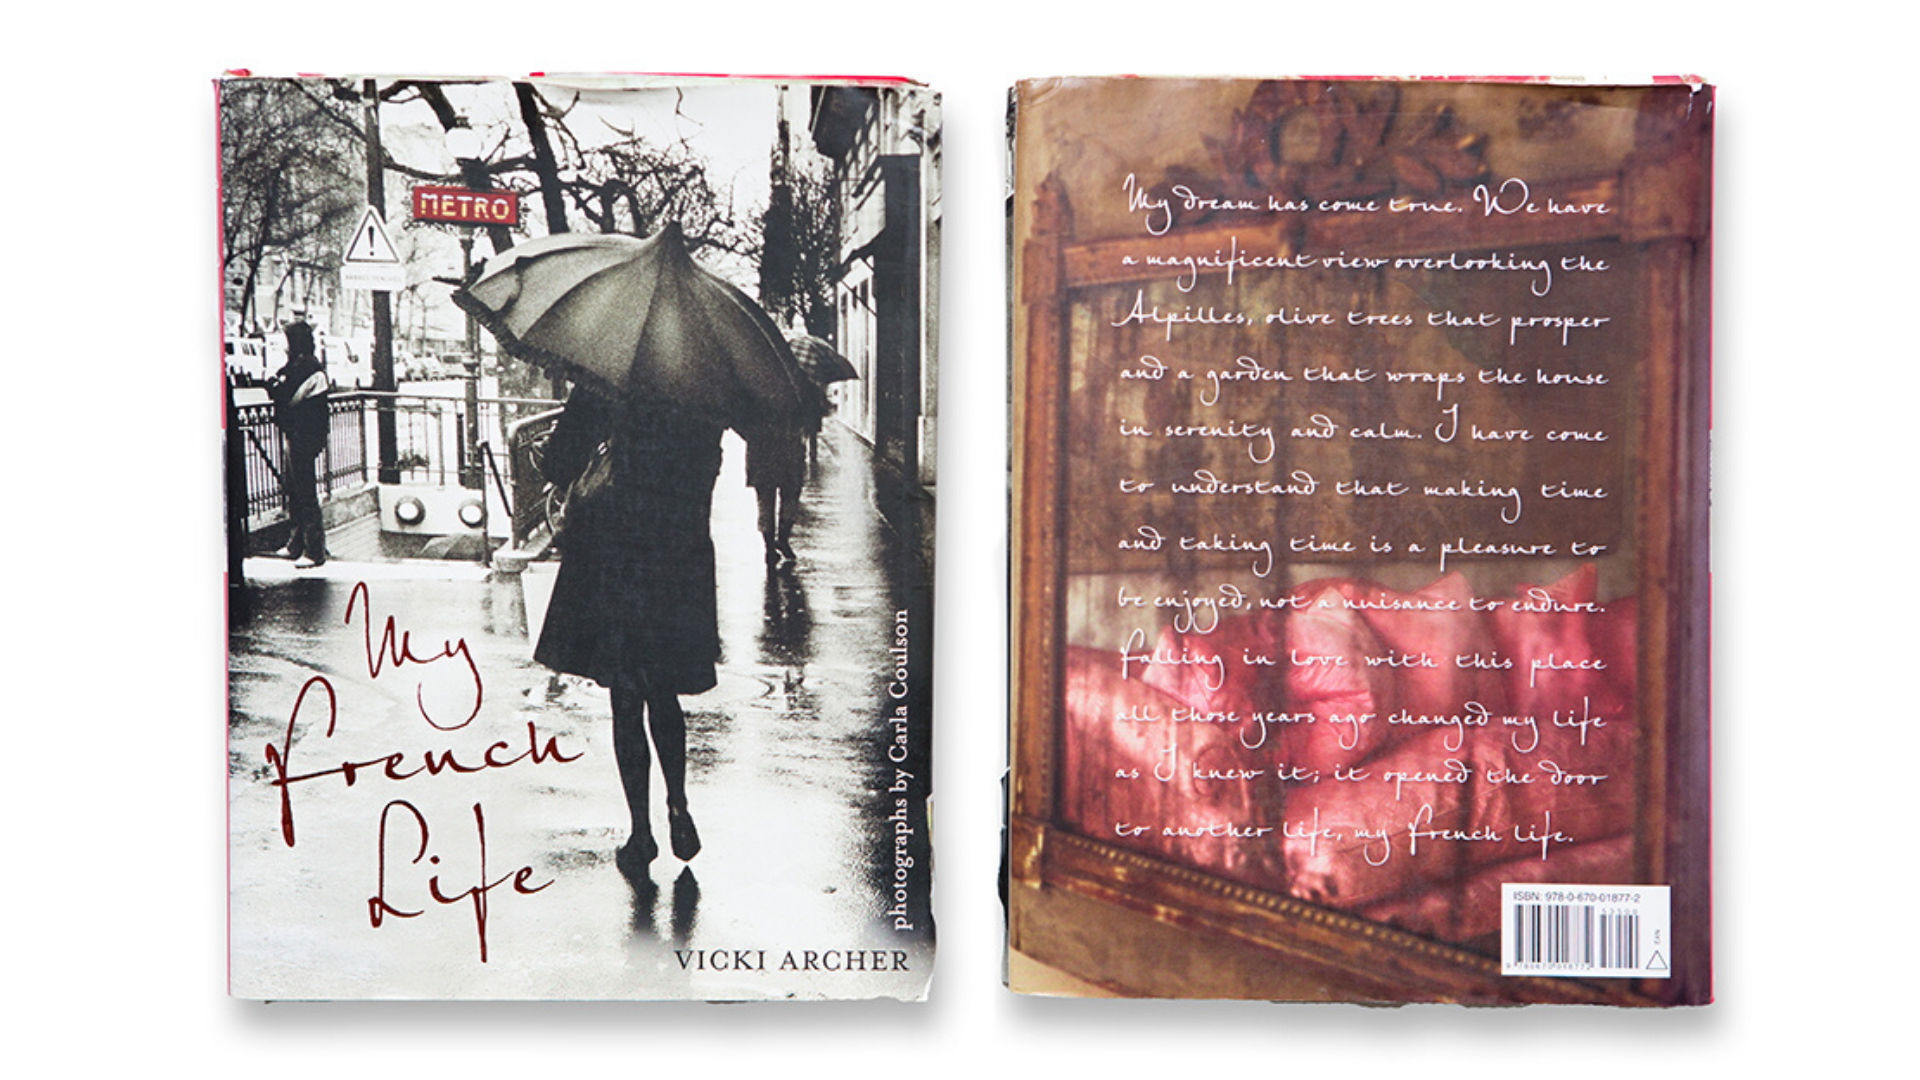 My French Life - Vicki Archer & Carla Coulson